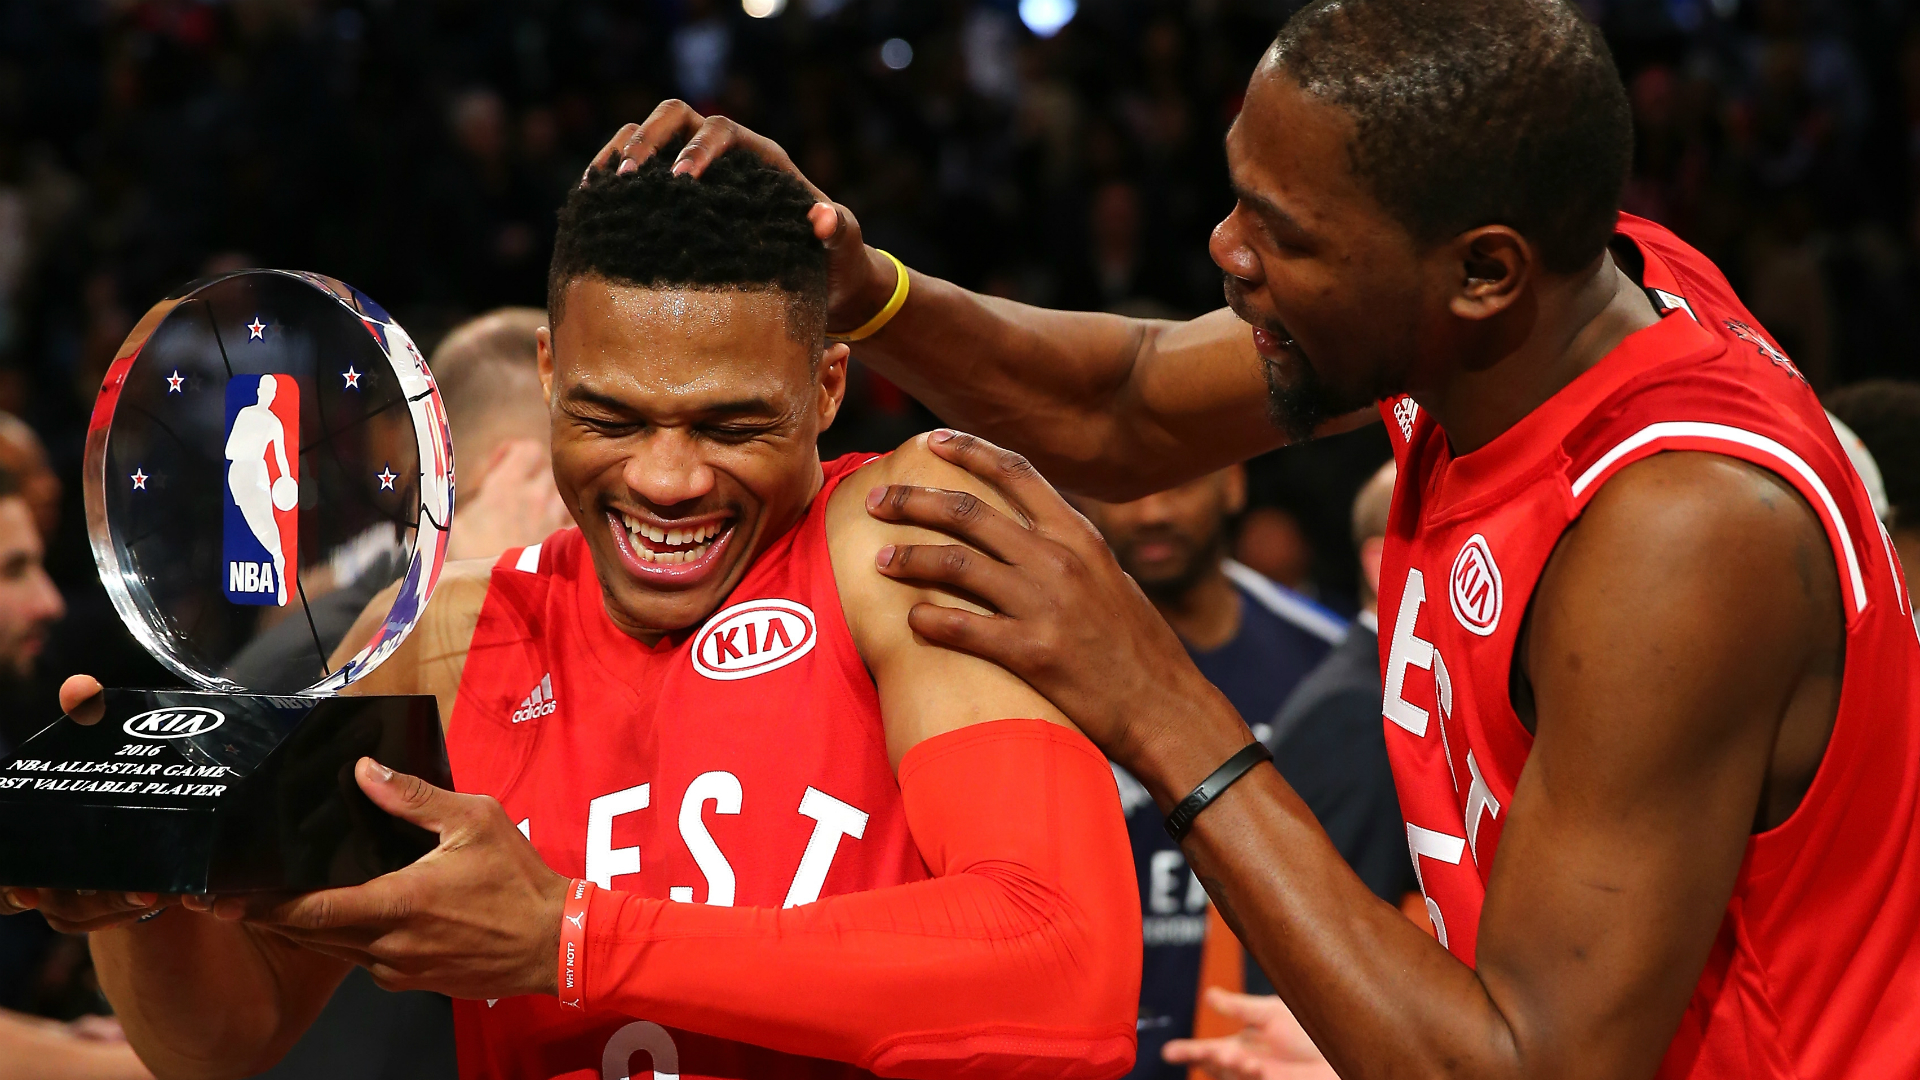 Russell Westbrook (Sports All-Stars)